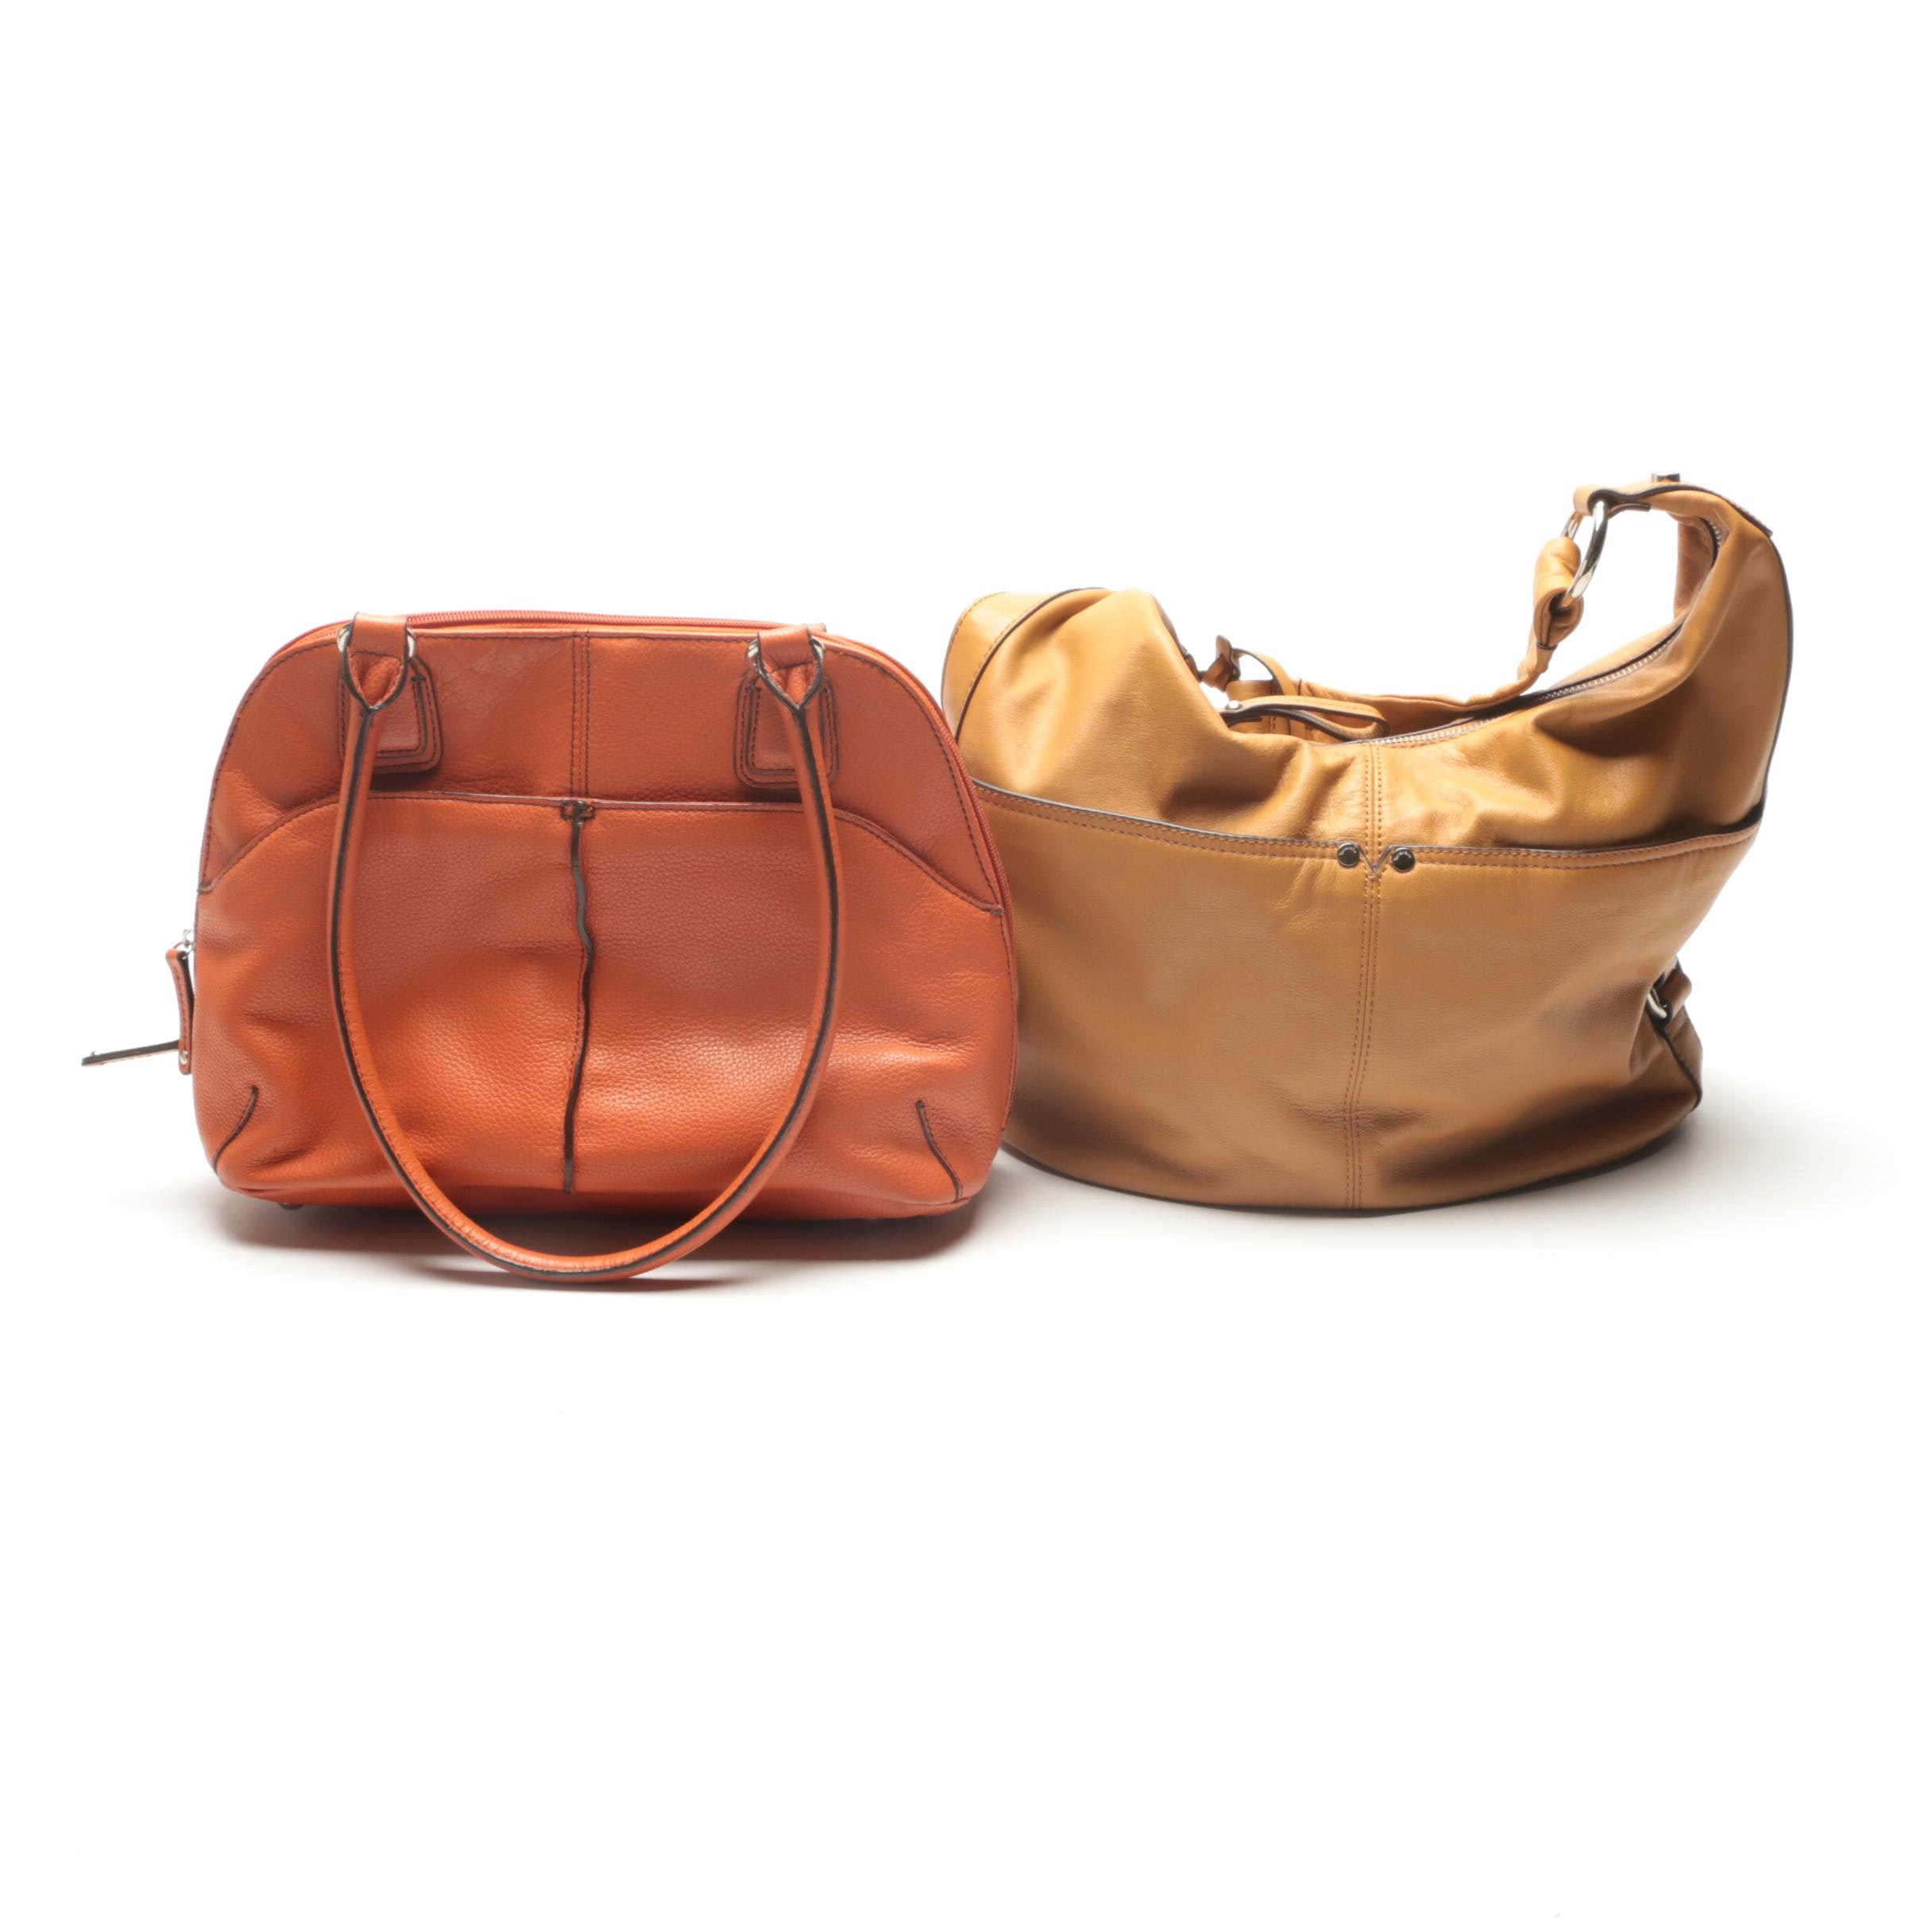 Tignanello Leather Handbags